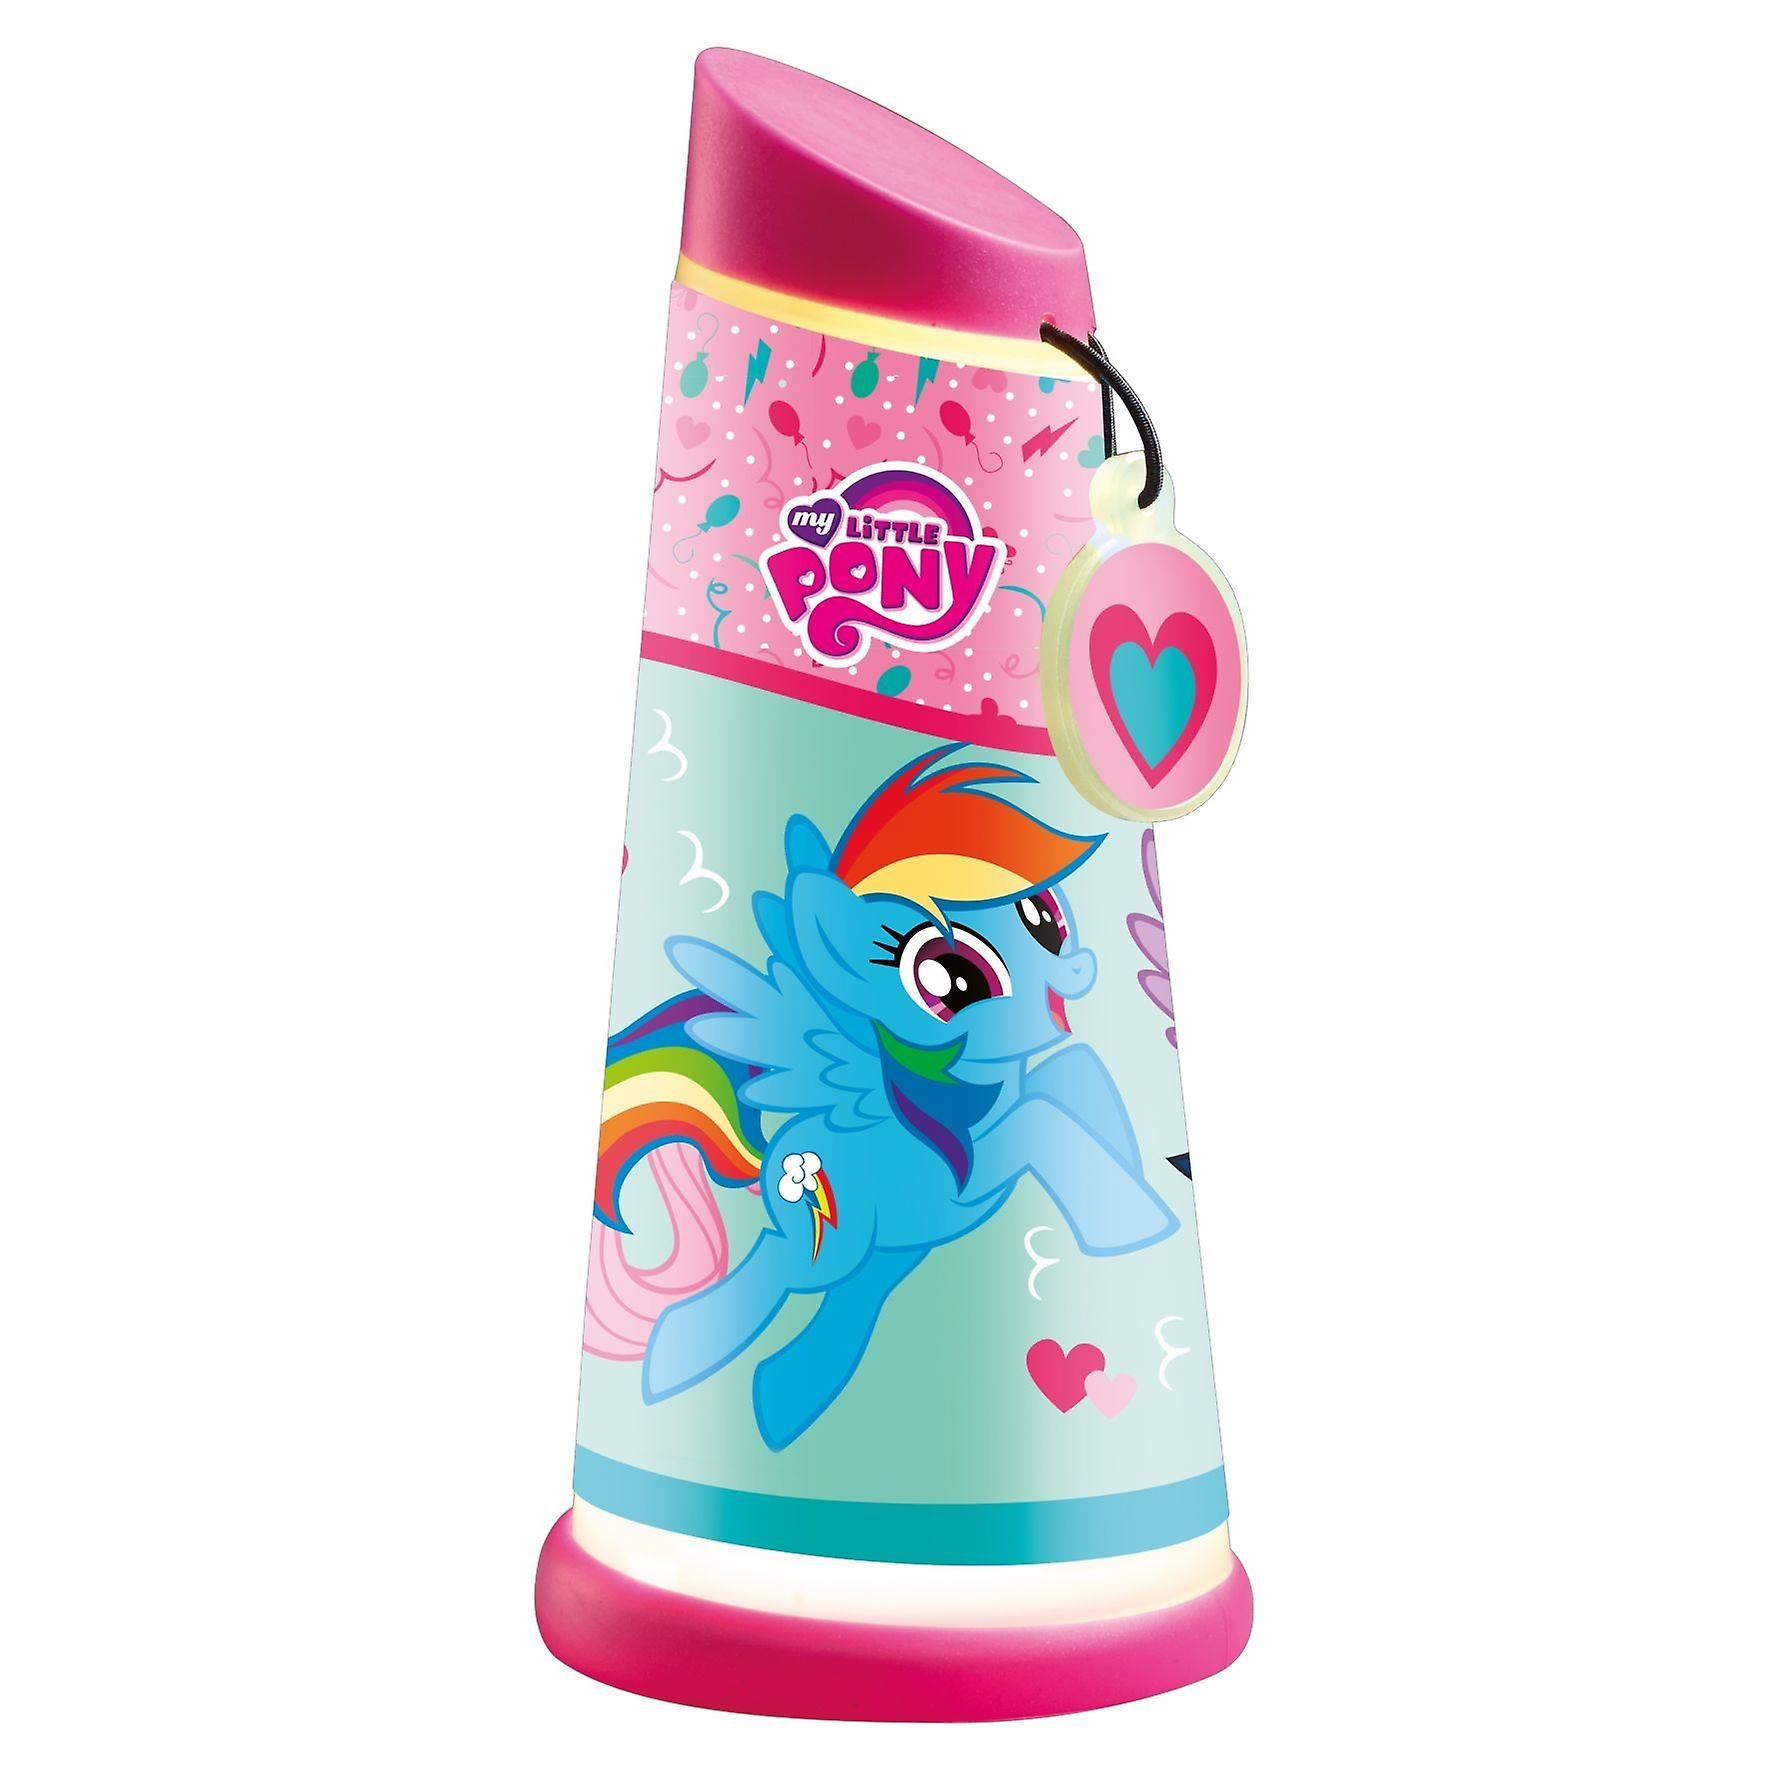 My Little Pony night lamp with torch